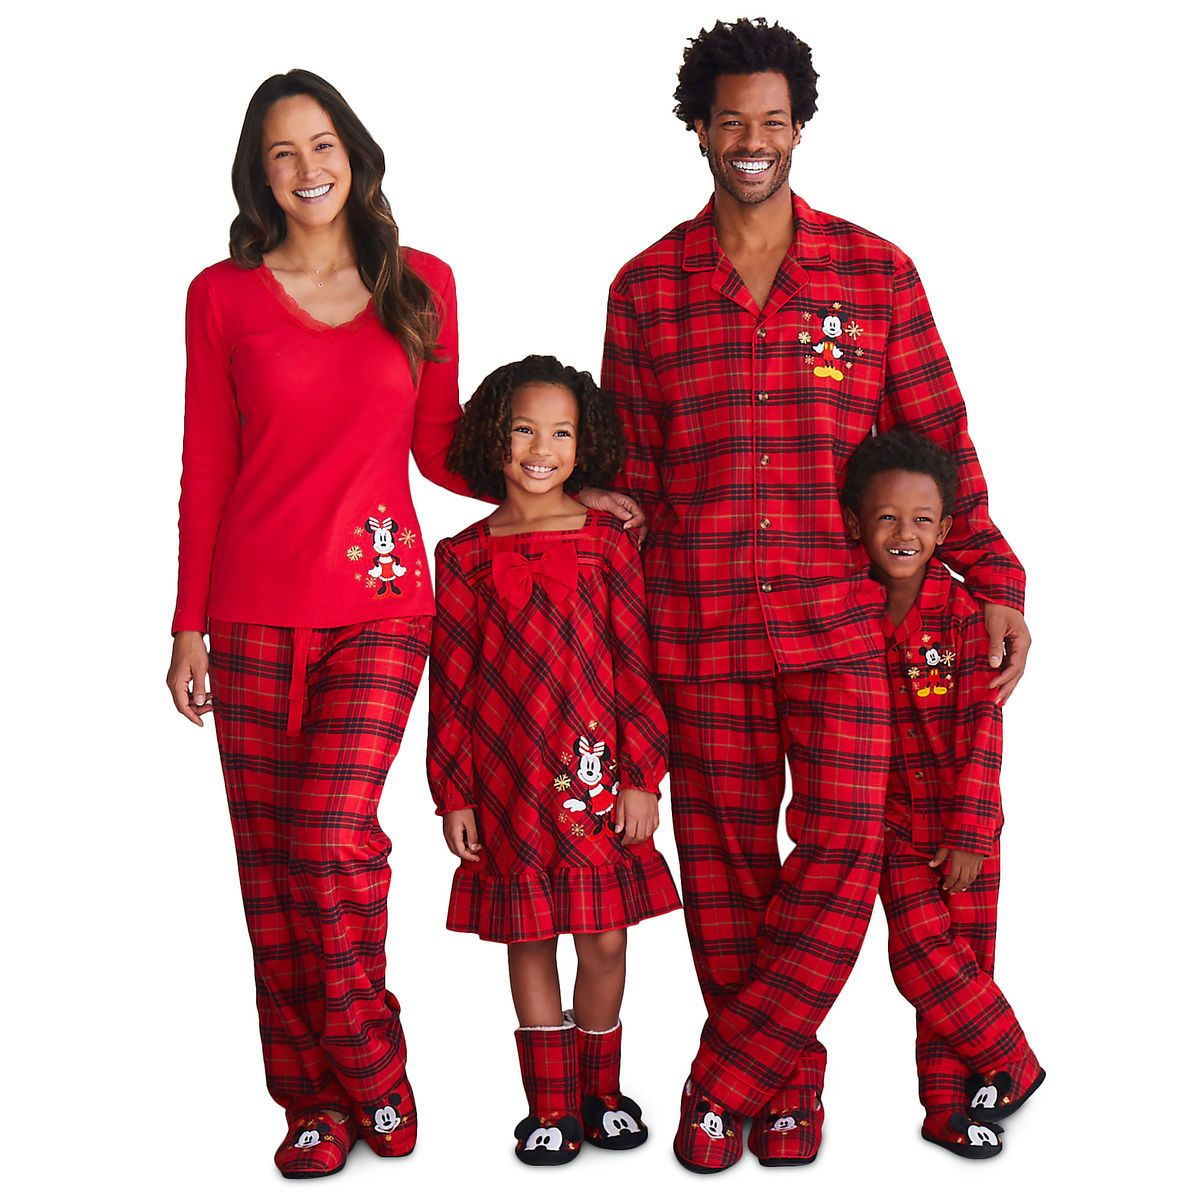 Mickey and Minnie Mouse Holiday Sleepwear for Family